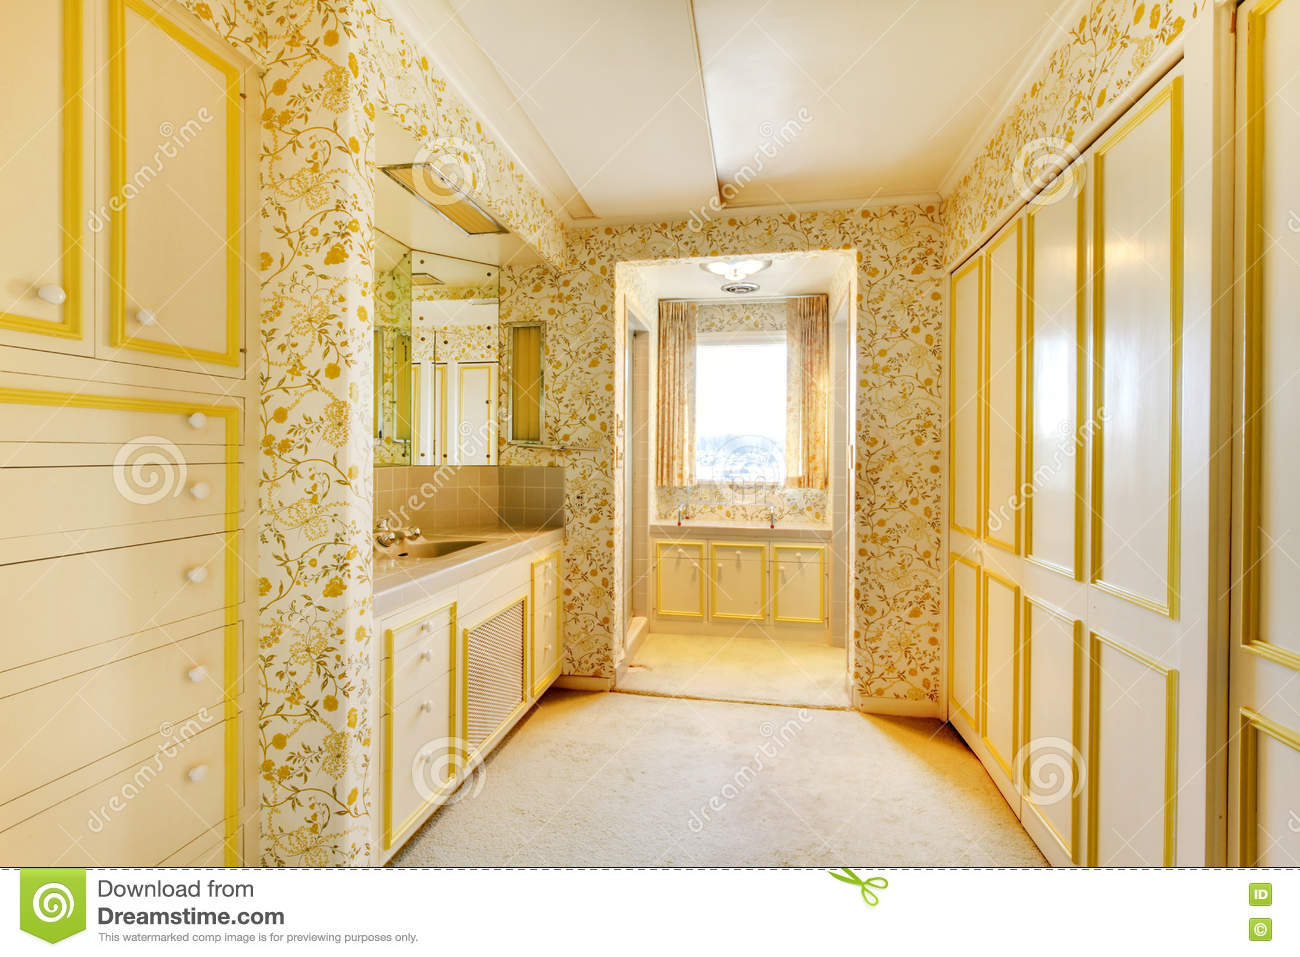 Old Classic American House Antique Bathroom Interior With Wallpaper And Carpet